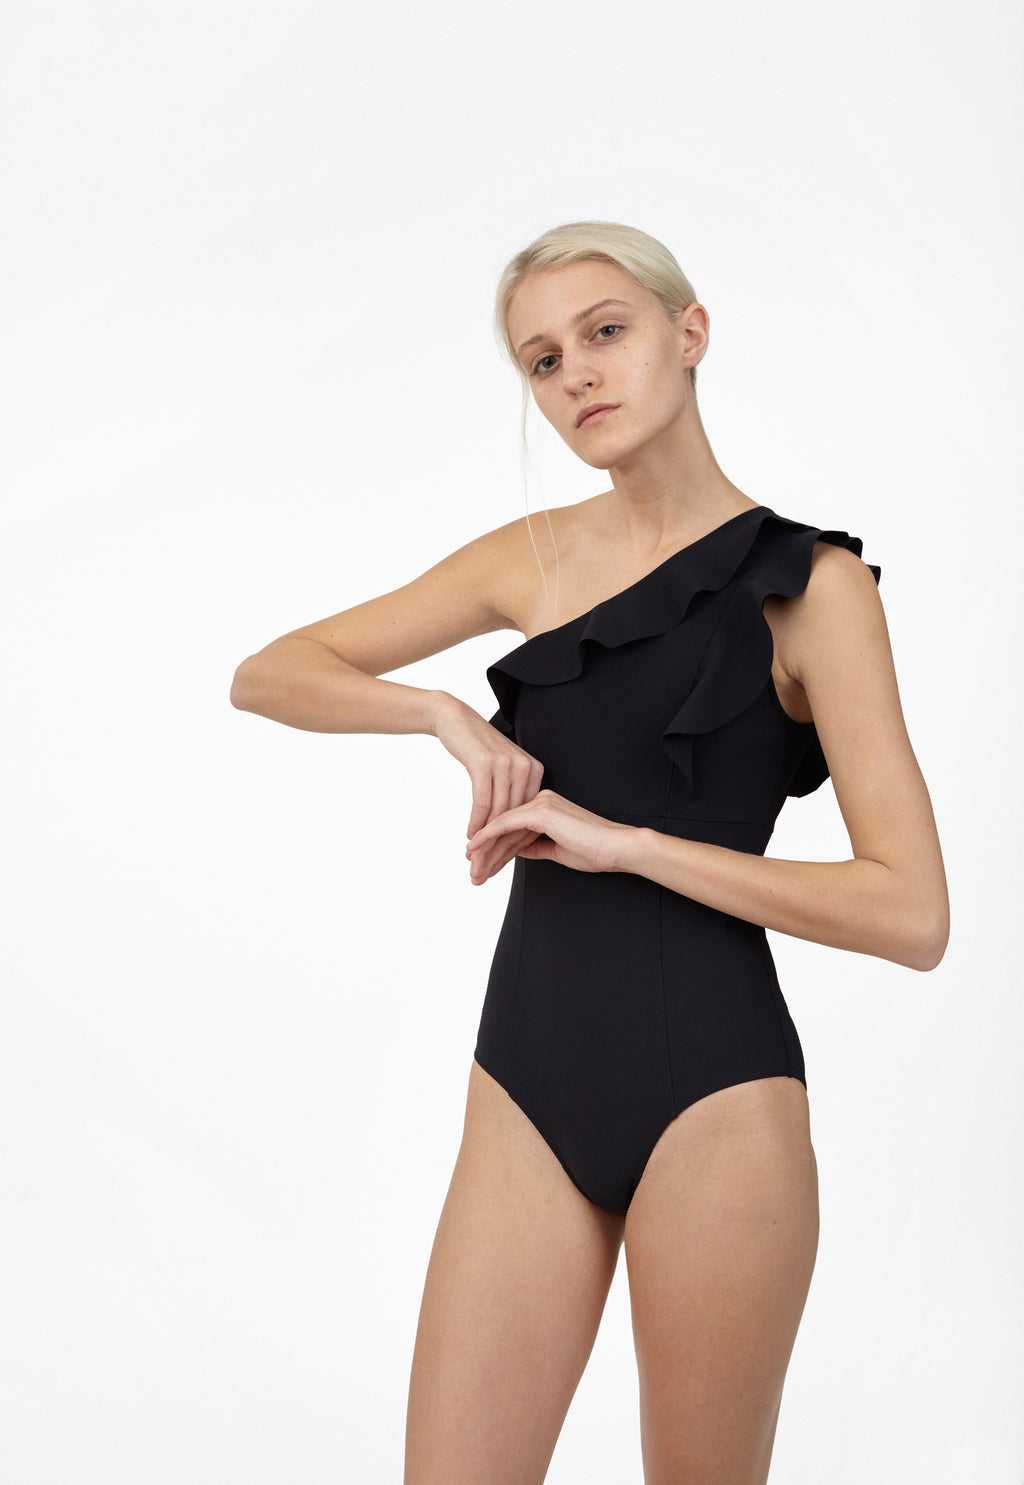 6 Shore Road Roxbury Women's One Piece Black Swimsuit in XS, S, M, L - Summer 2018 Collection